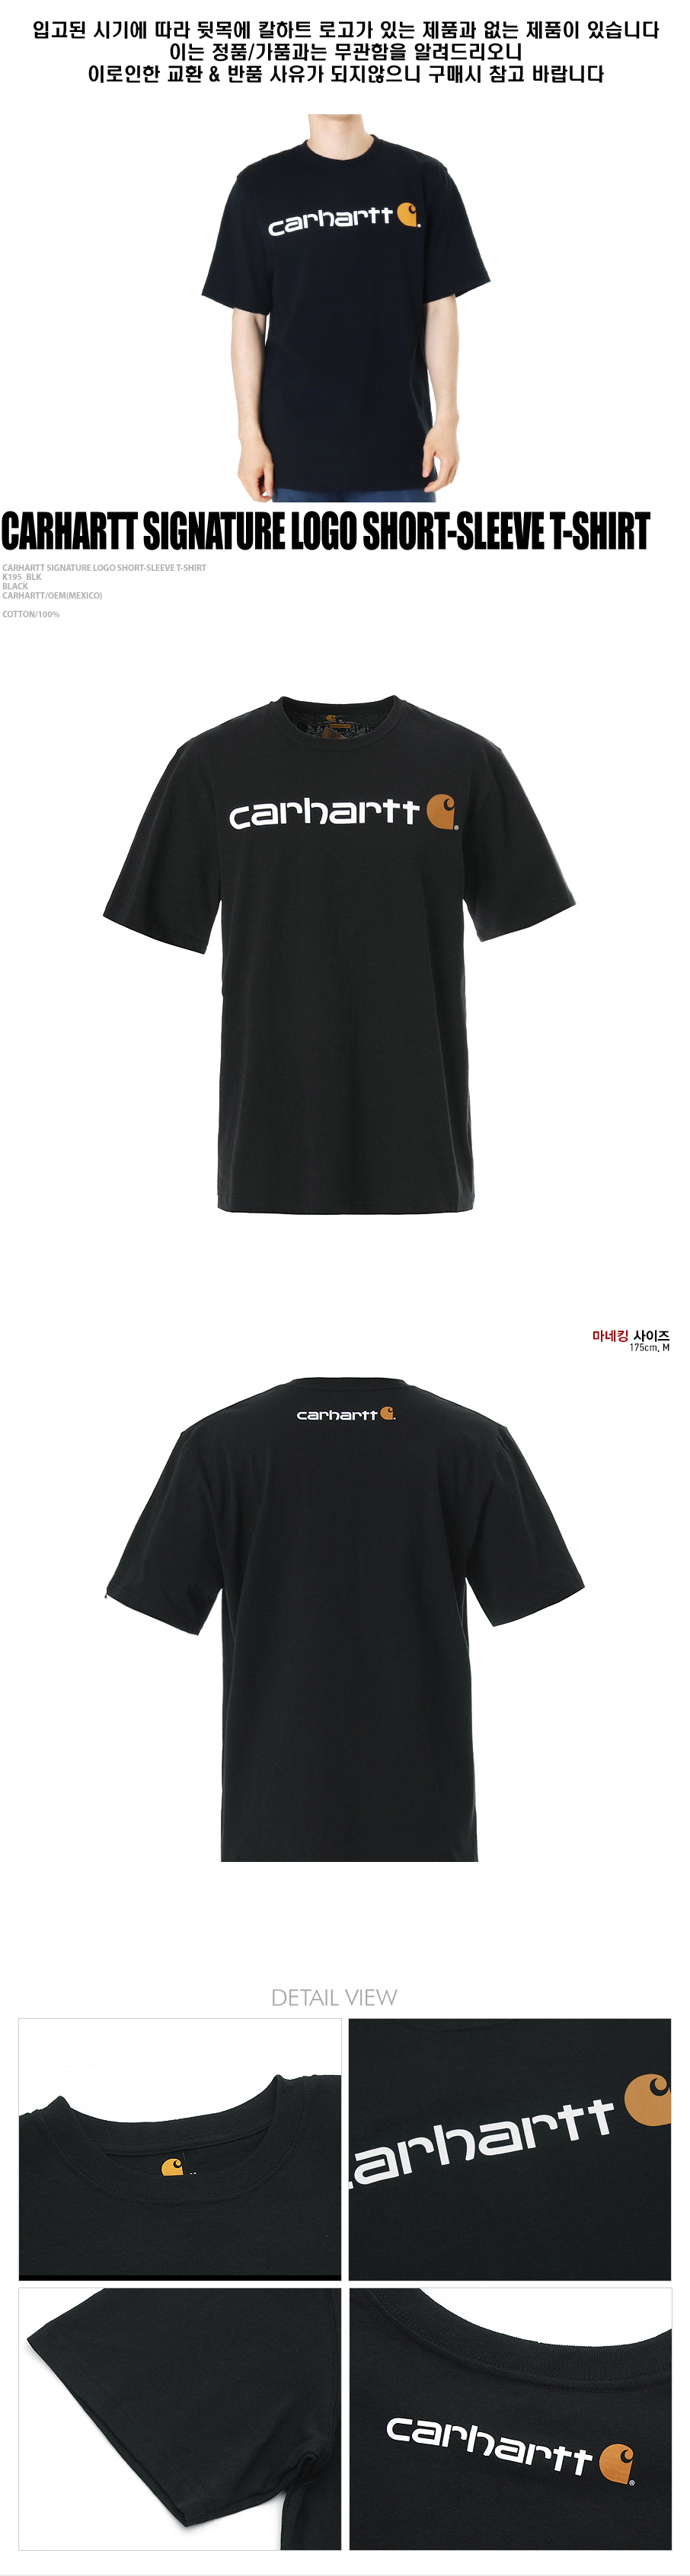 칼하트 시그니쳐로고 반팔티 블랙(CARHARTT SIGNATURE LOGO SHORT-SLEEVE T-SHIRT BLACK)